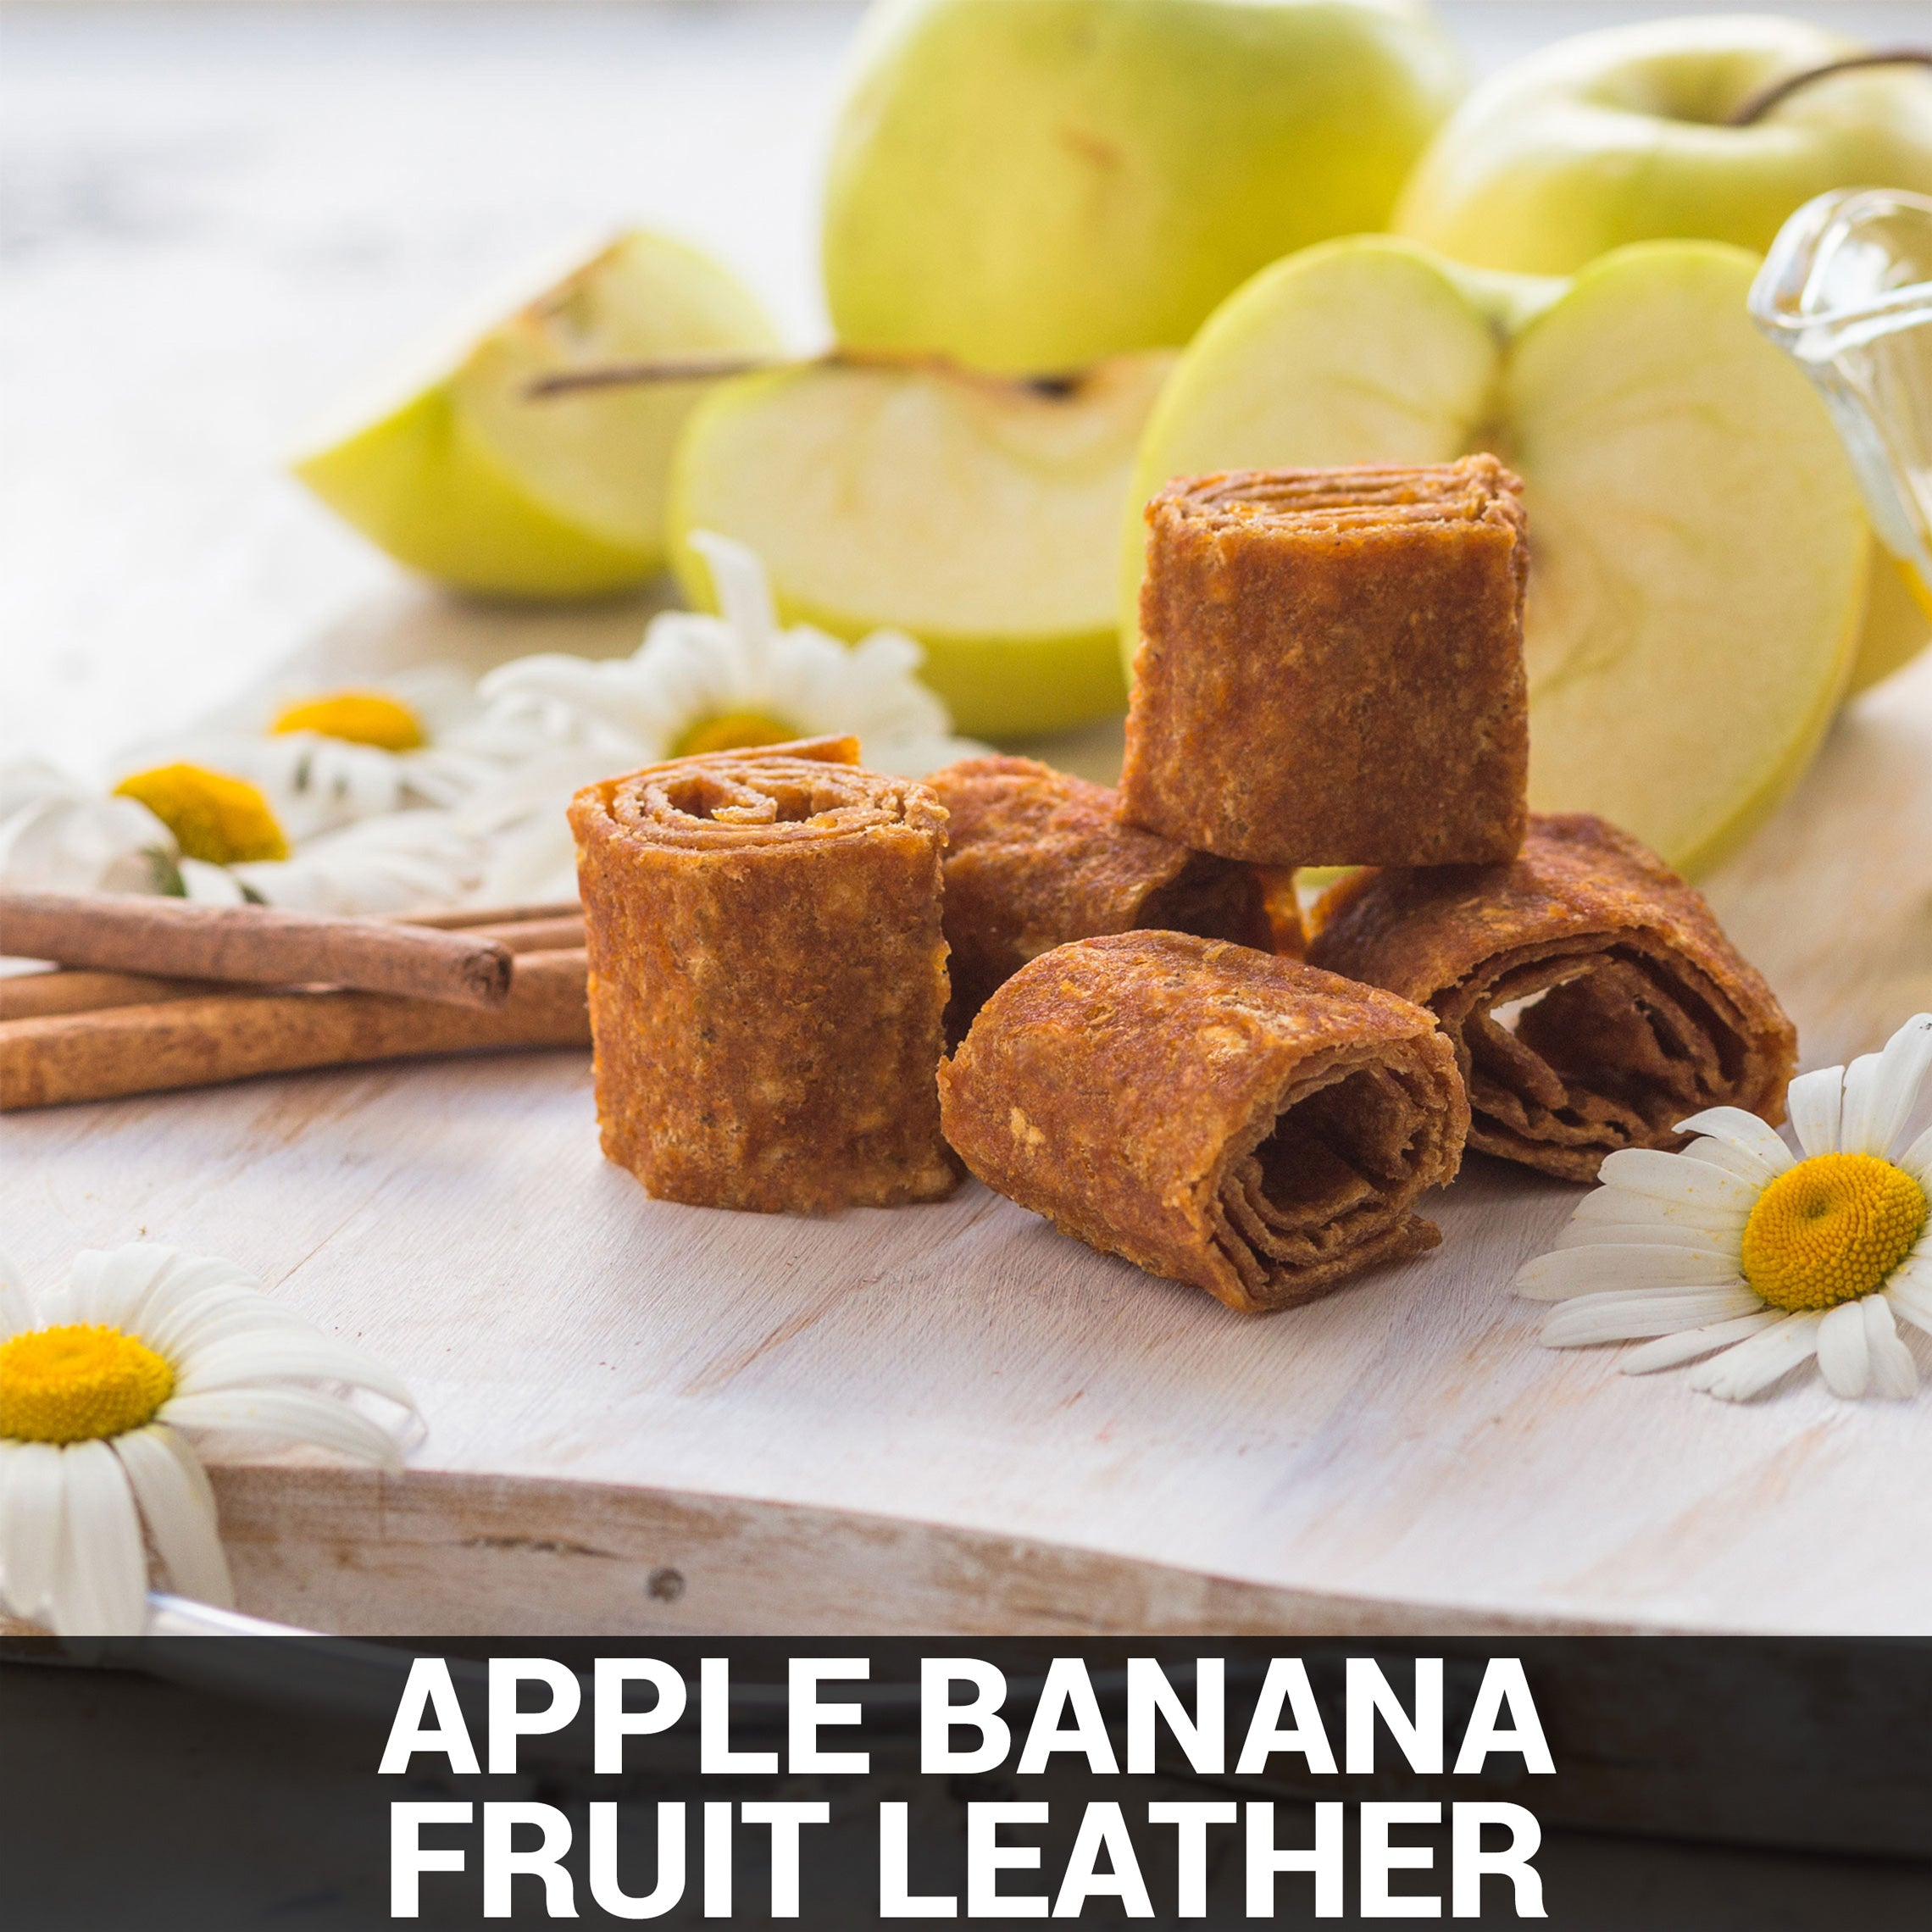 Apple Banana Fruit Leather Recipe - Foods Alive